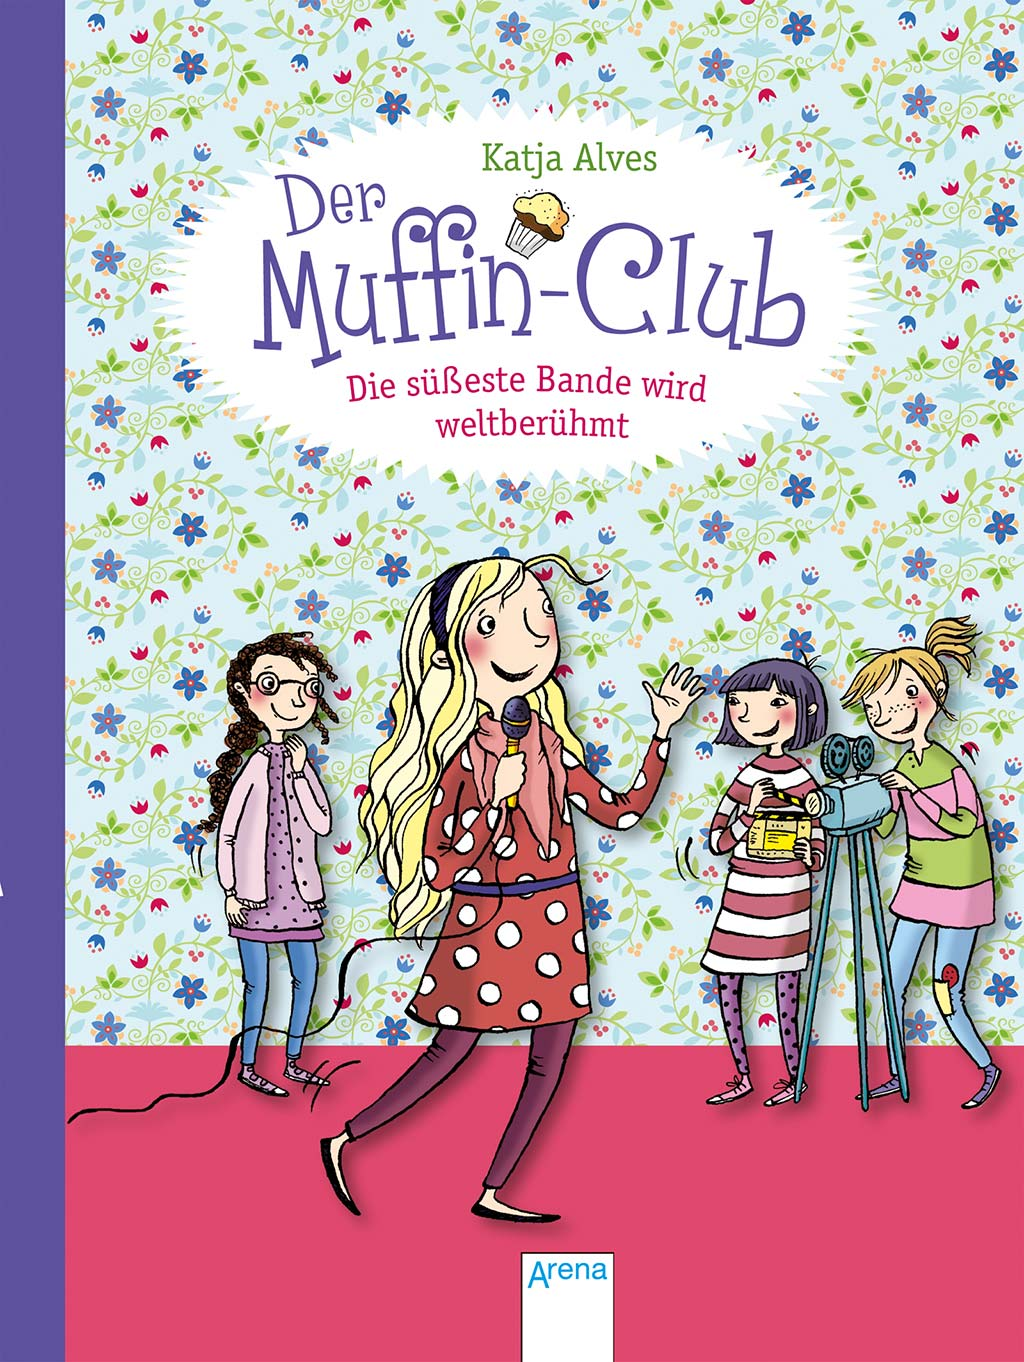 katja alves, der muffin-club